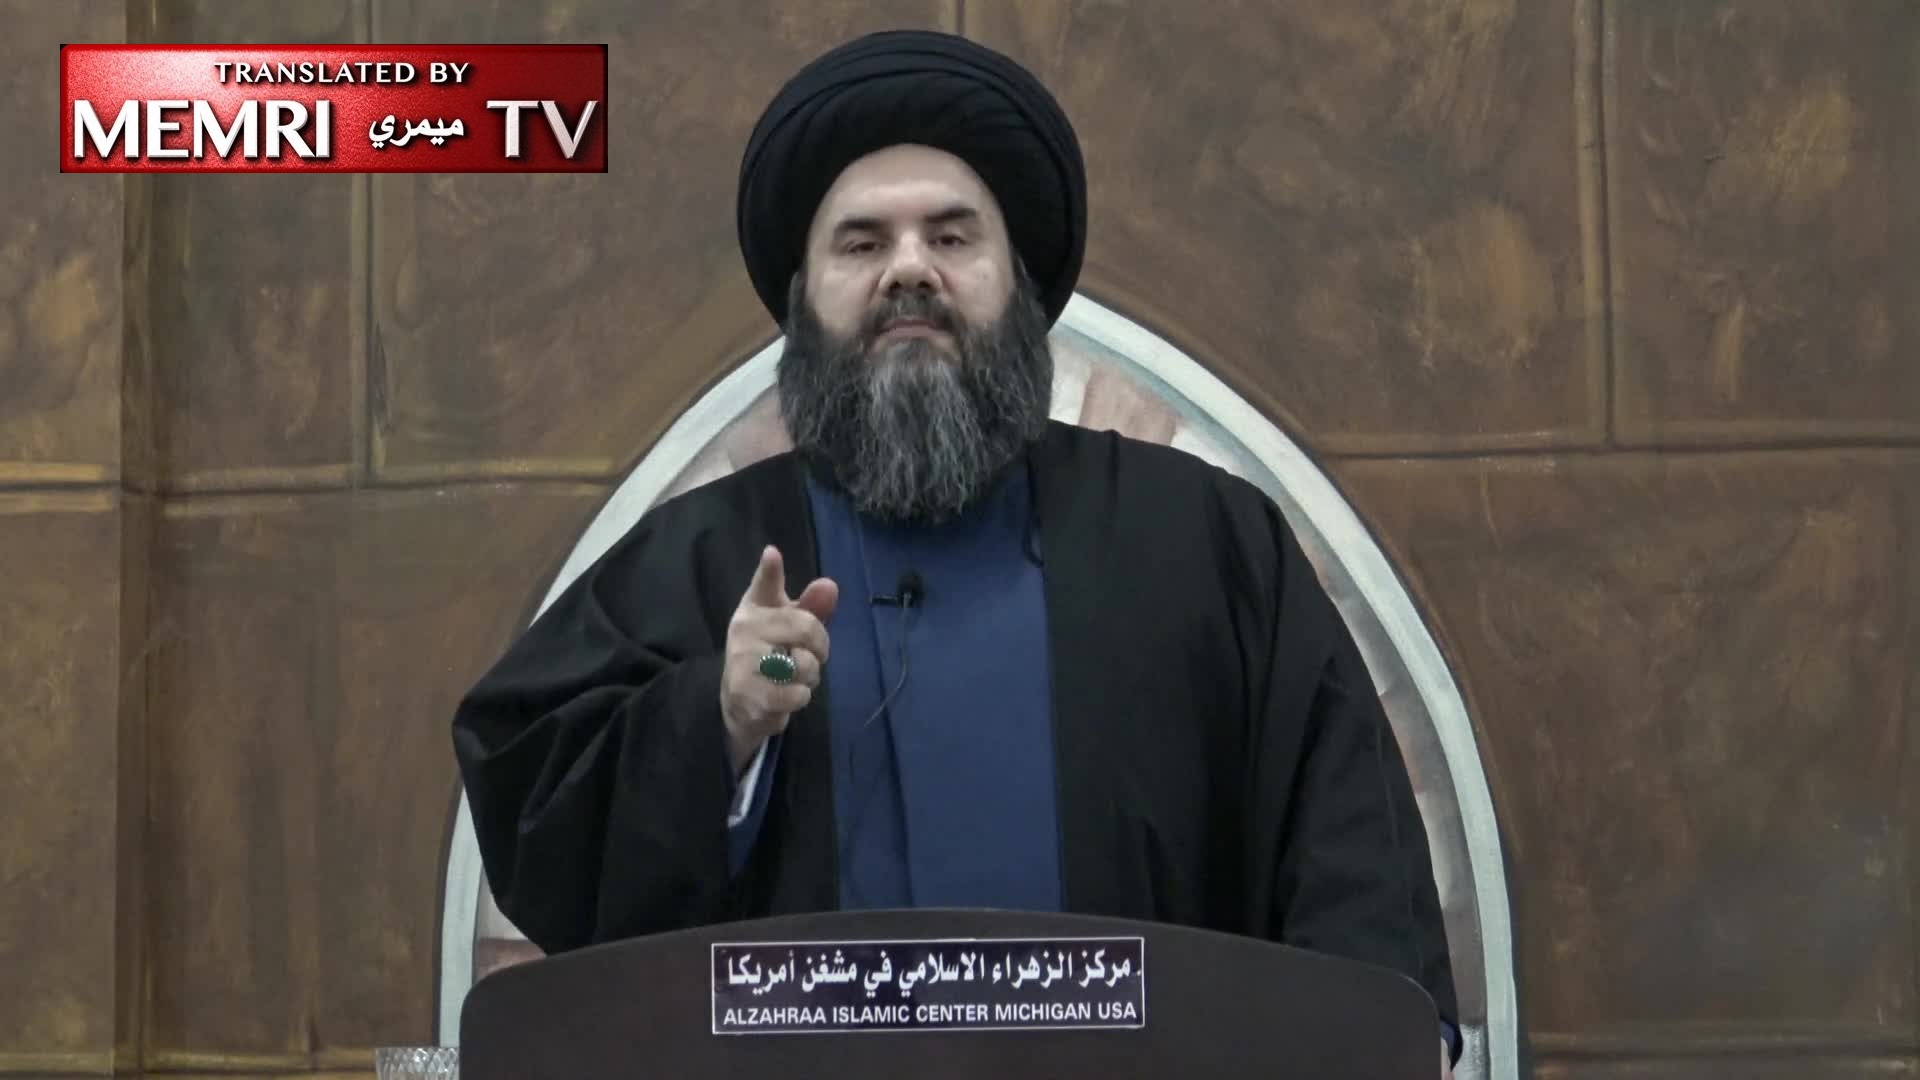 Detroit-Based Shiite Iraqi Imam Bassem Al-Sheraa: The Iraqi People Must Gather Around the Leadership of Ayatollah Al-Sistani